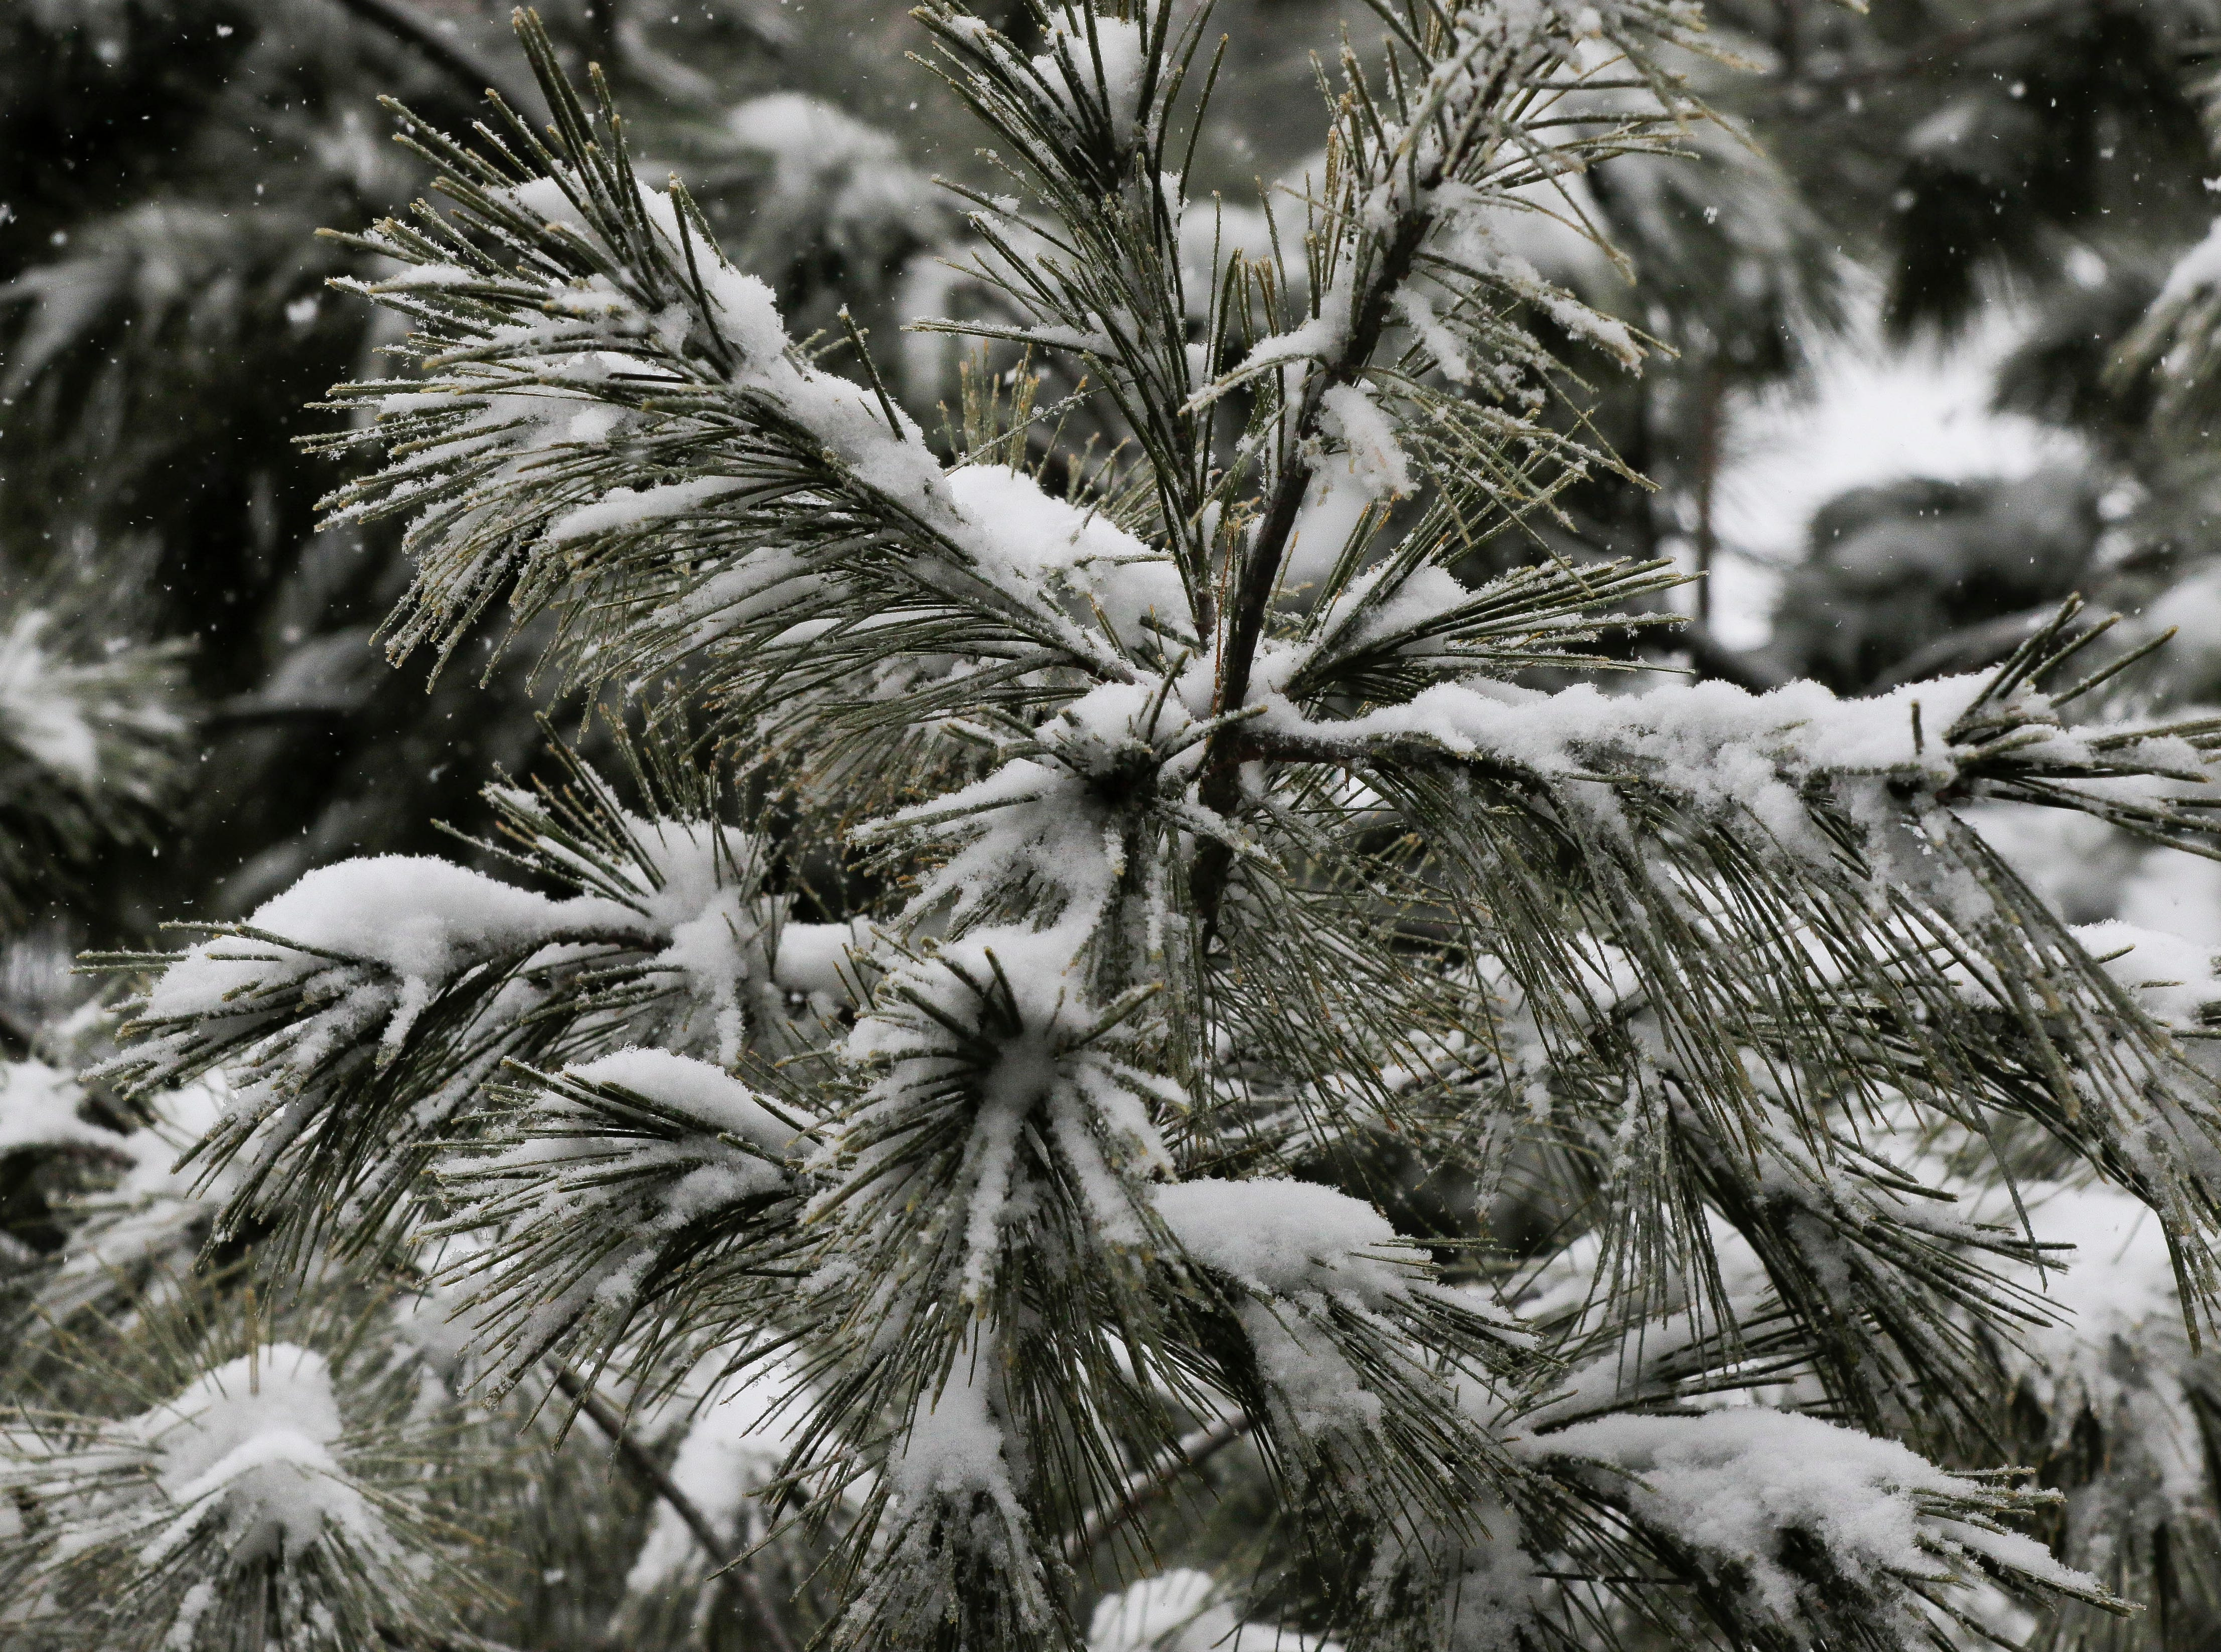 Snow builds up on the branches of an evergreen tree on Thursday, February 7, 2019, in Stevens Point, Wis. A winter storm is expected to drop 5-8 inches of snow in the area by the time it clears Thursday evening.